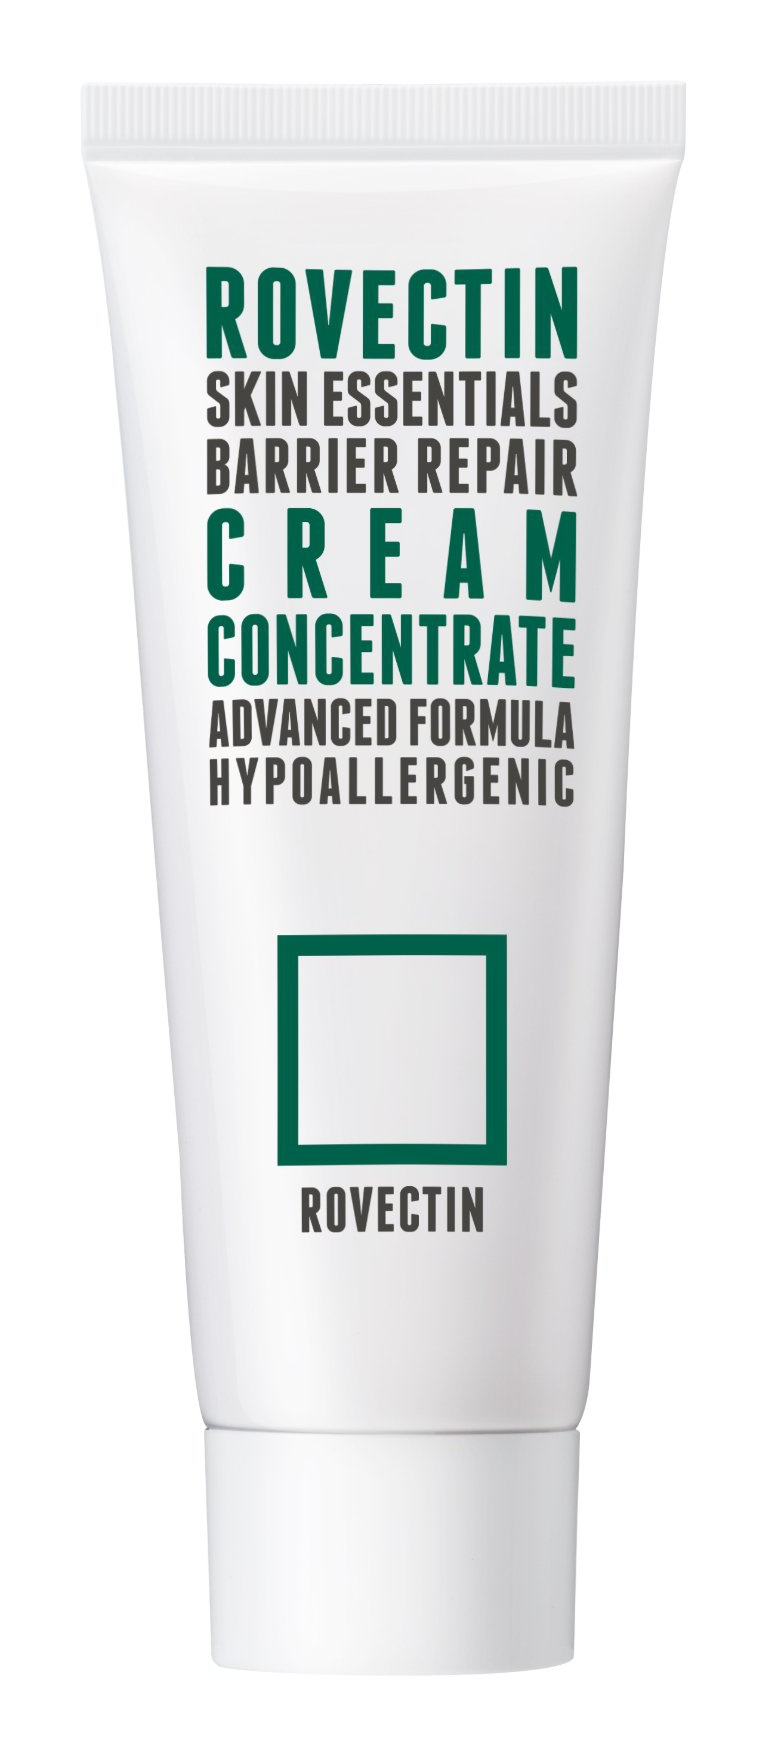 rovectin Barrier Repair Cream Concentrate